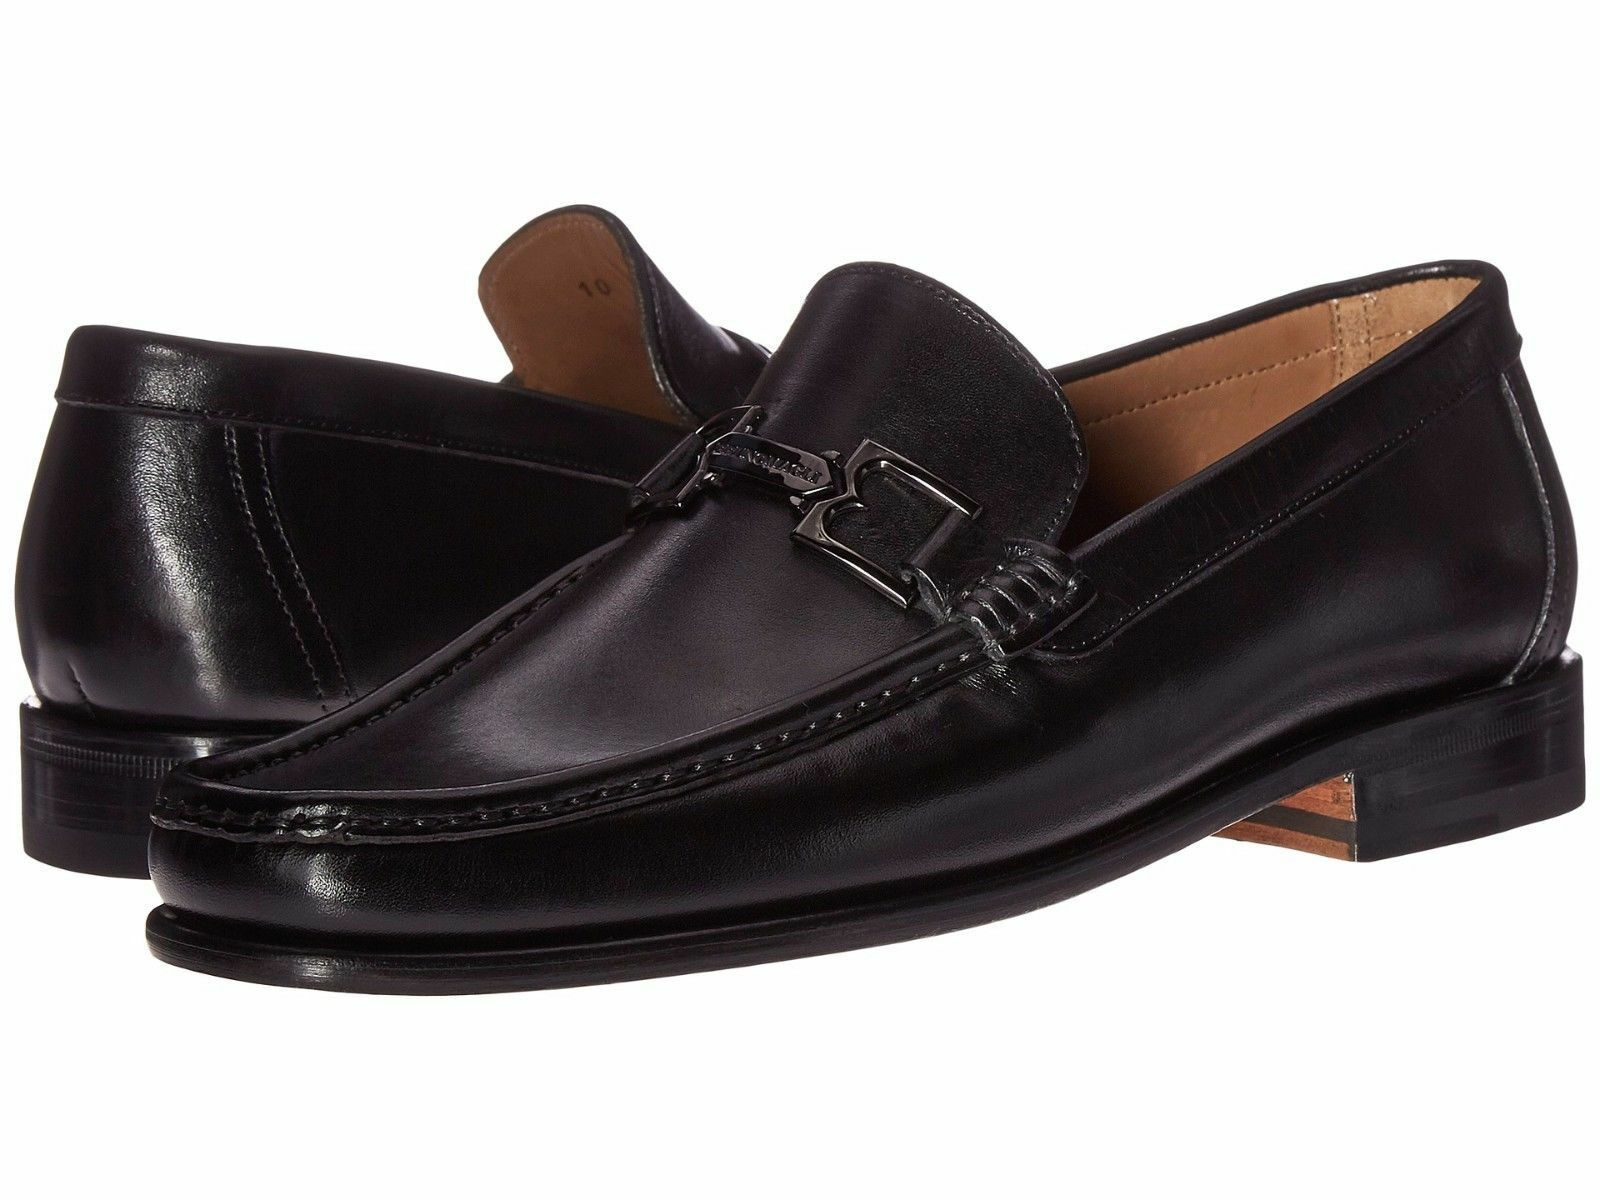 Bcouriro Magli Hommes Bigolo Cuir Noir Embout Handmade Italien Mocassin   chaussure